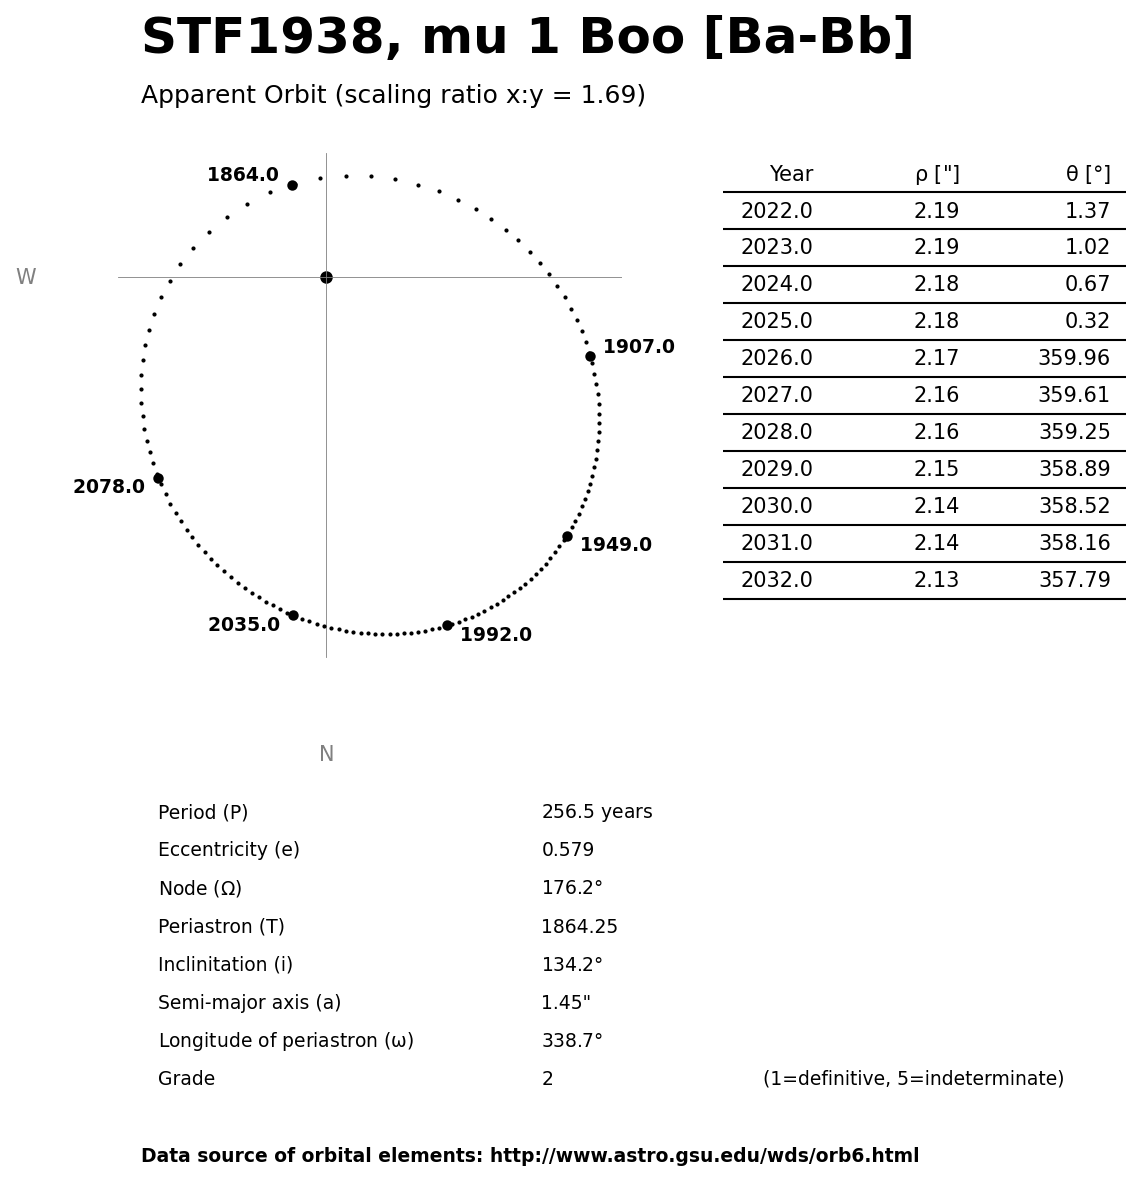 ../images/binary-star-orbits/STF1938-Ba-Bb-orbit.jpg